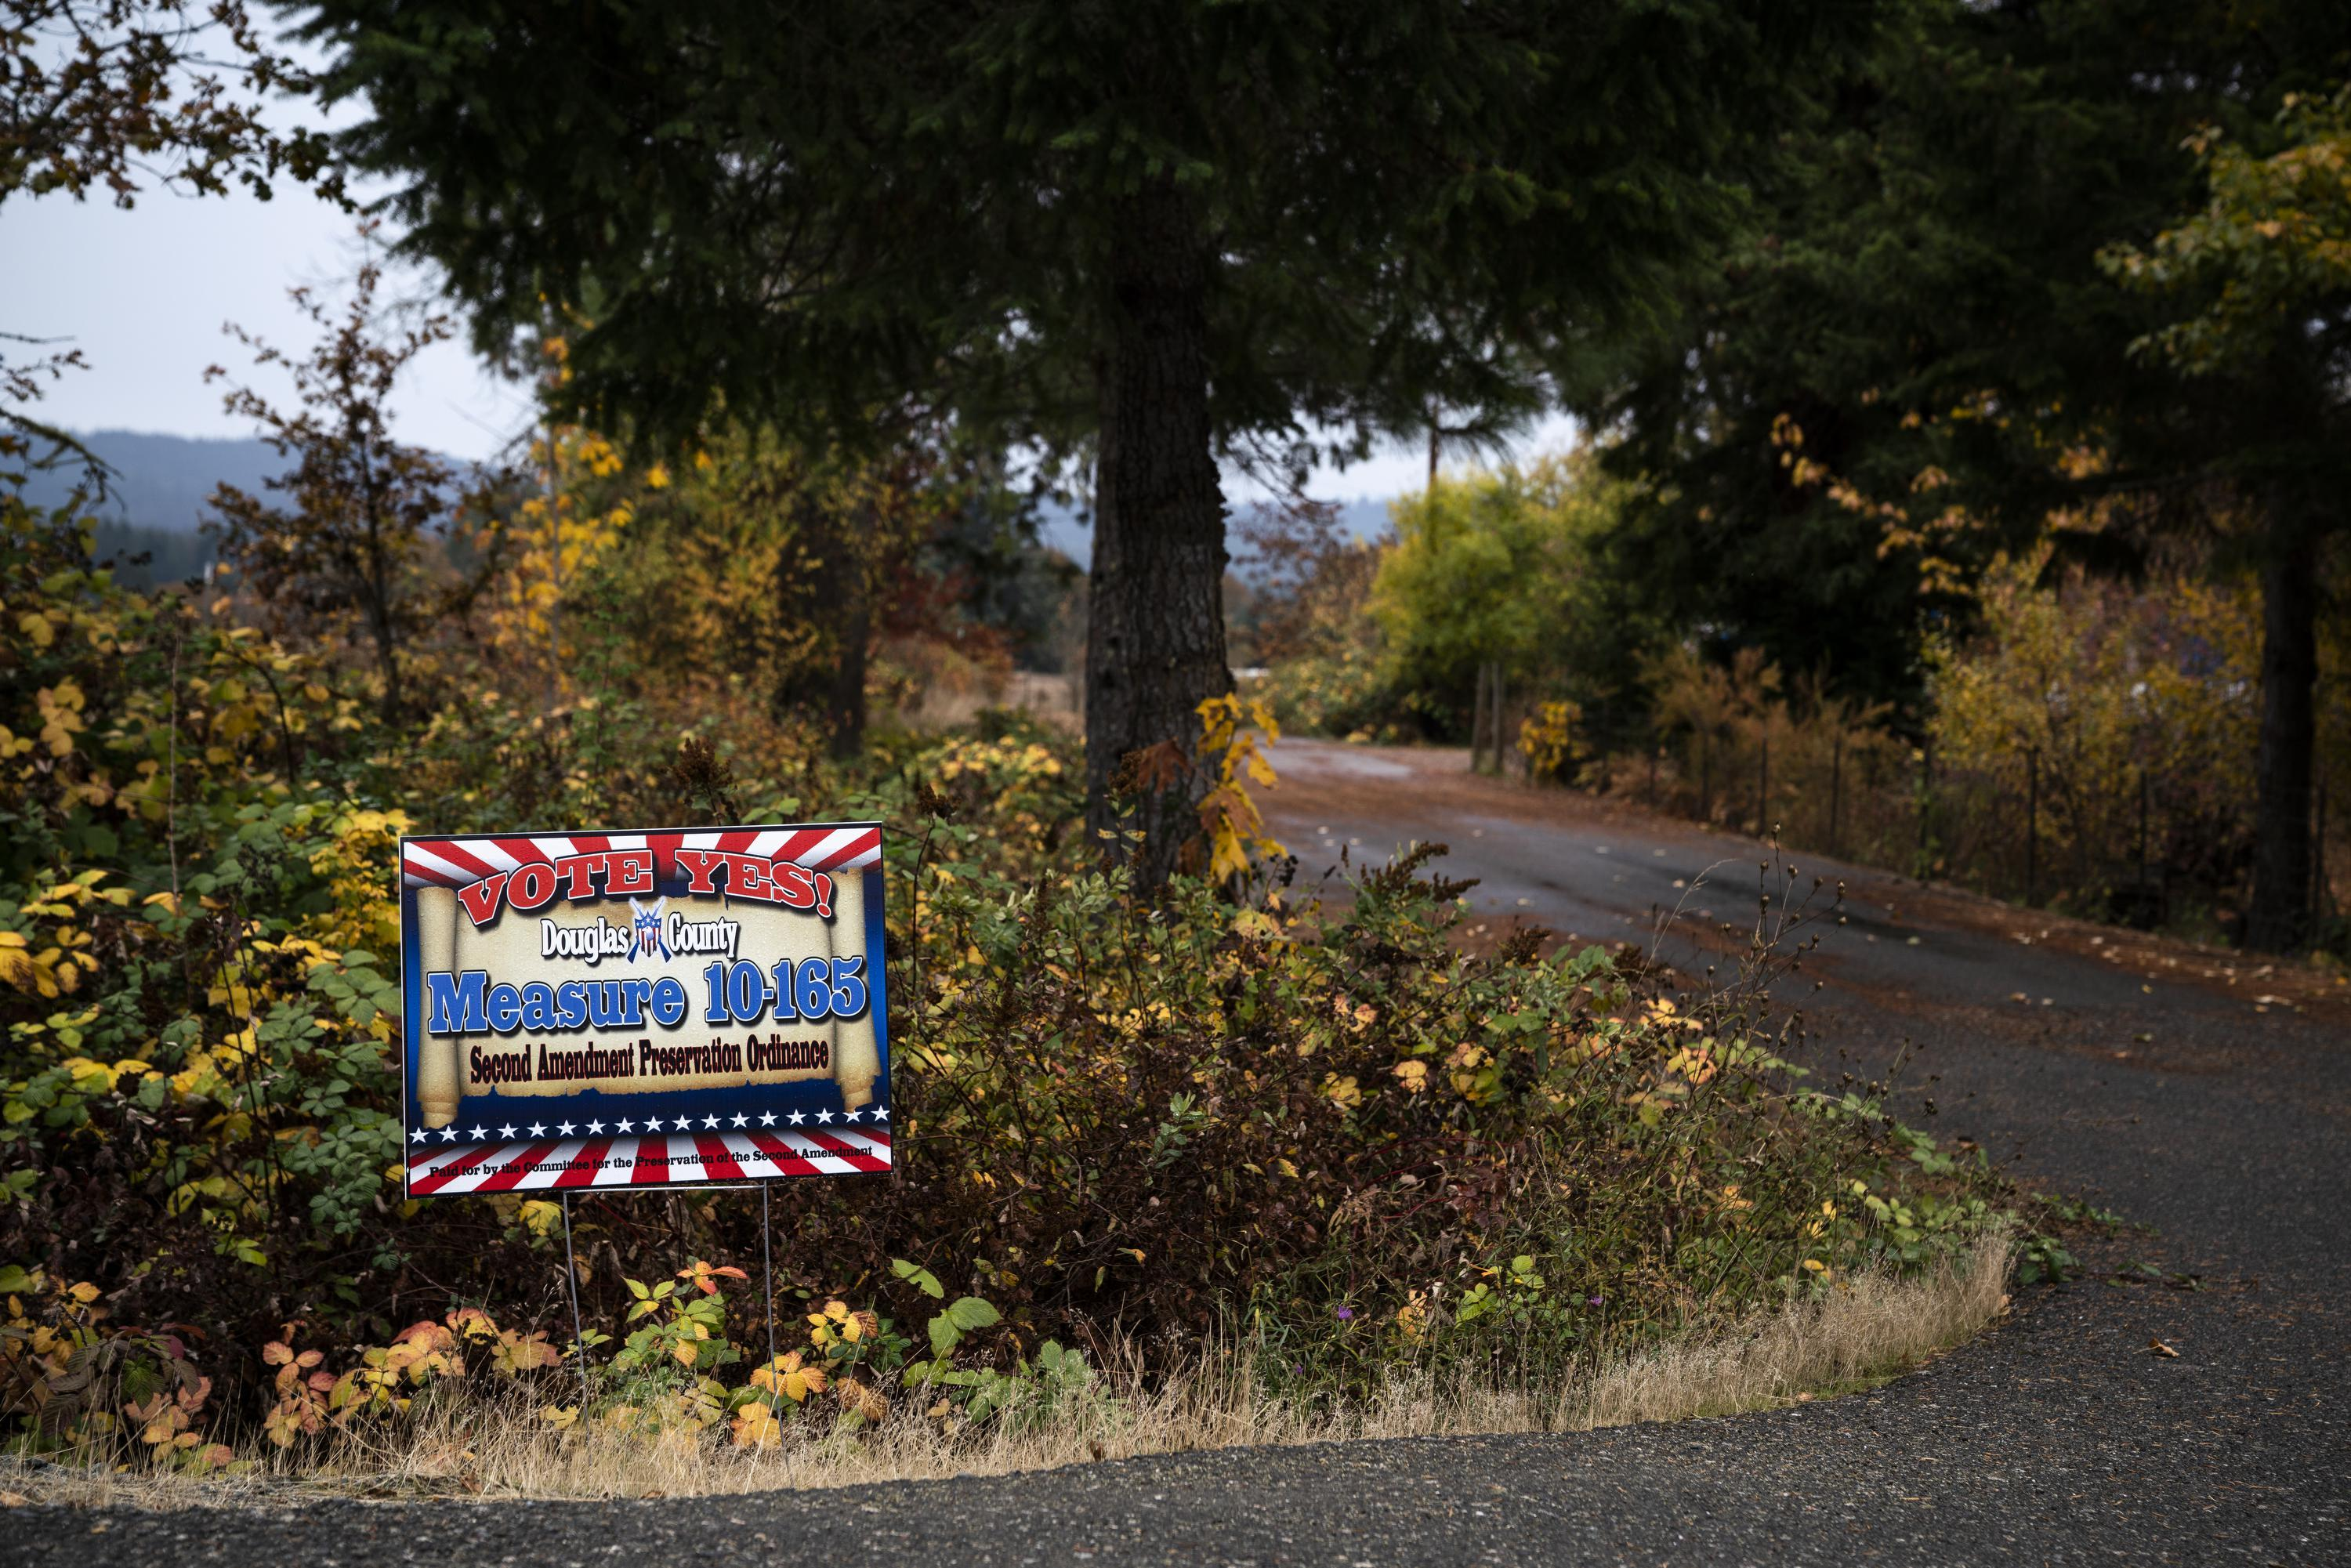 CAMAS VALLEY, OR - OCTOBER 23: Tom McKirgan stands in front of his house with a campaign sign supporting the Douglas County Second Amendment Preservation Ordinance on October 23, 2018 in Camas Valley, Oregon. McKirgan is a member of the Three Percenter militia and helped write the Douglas County ordinance. (Credit: Jonathan Levinson, OPB)